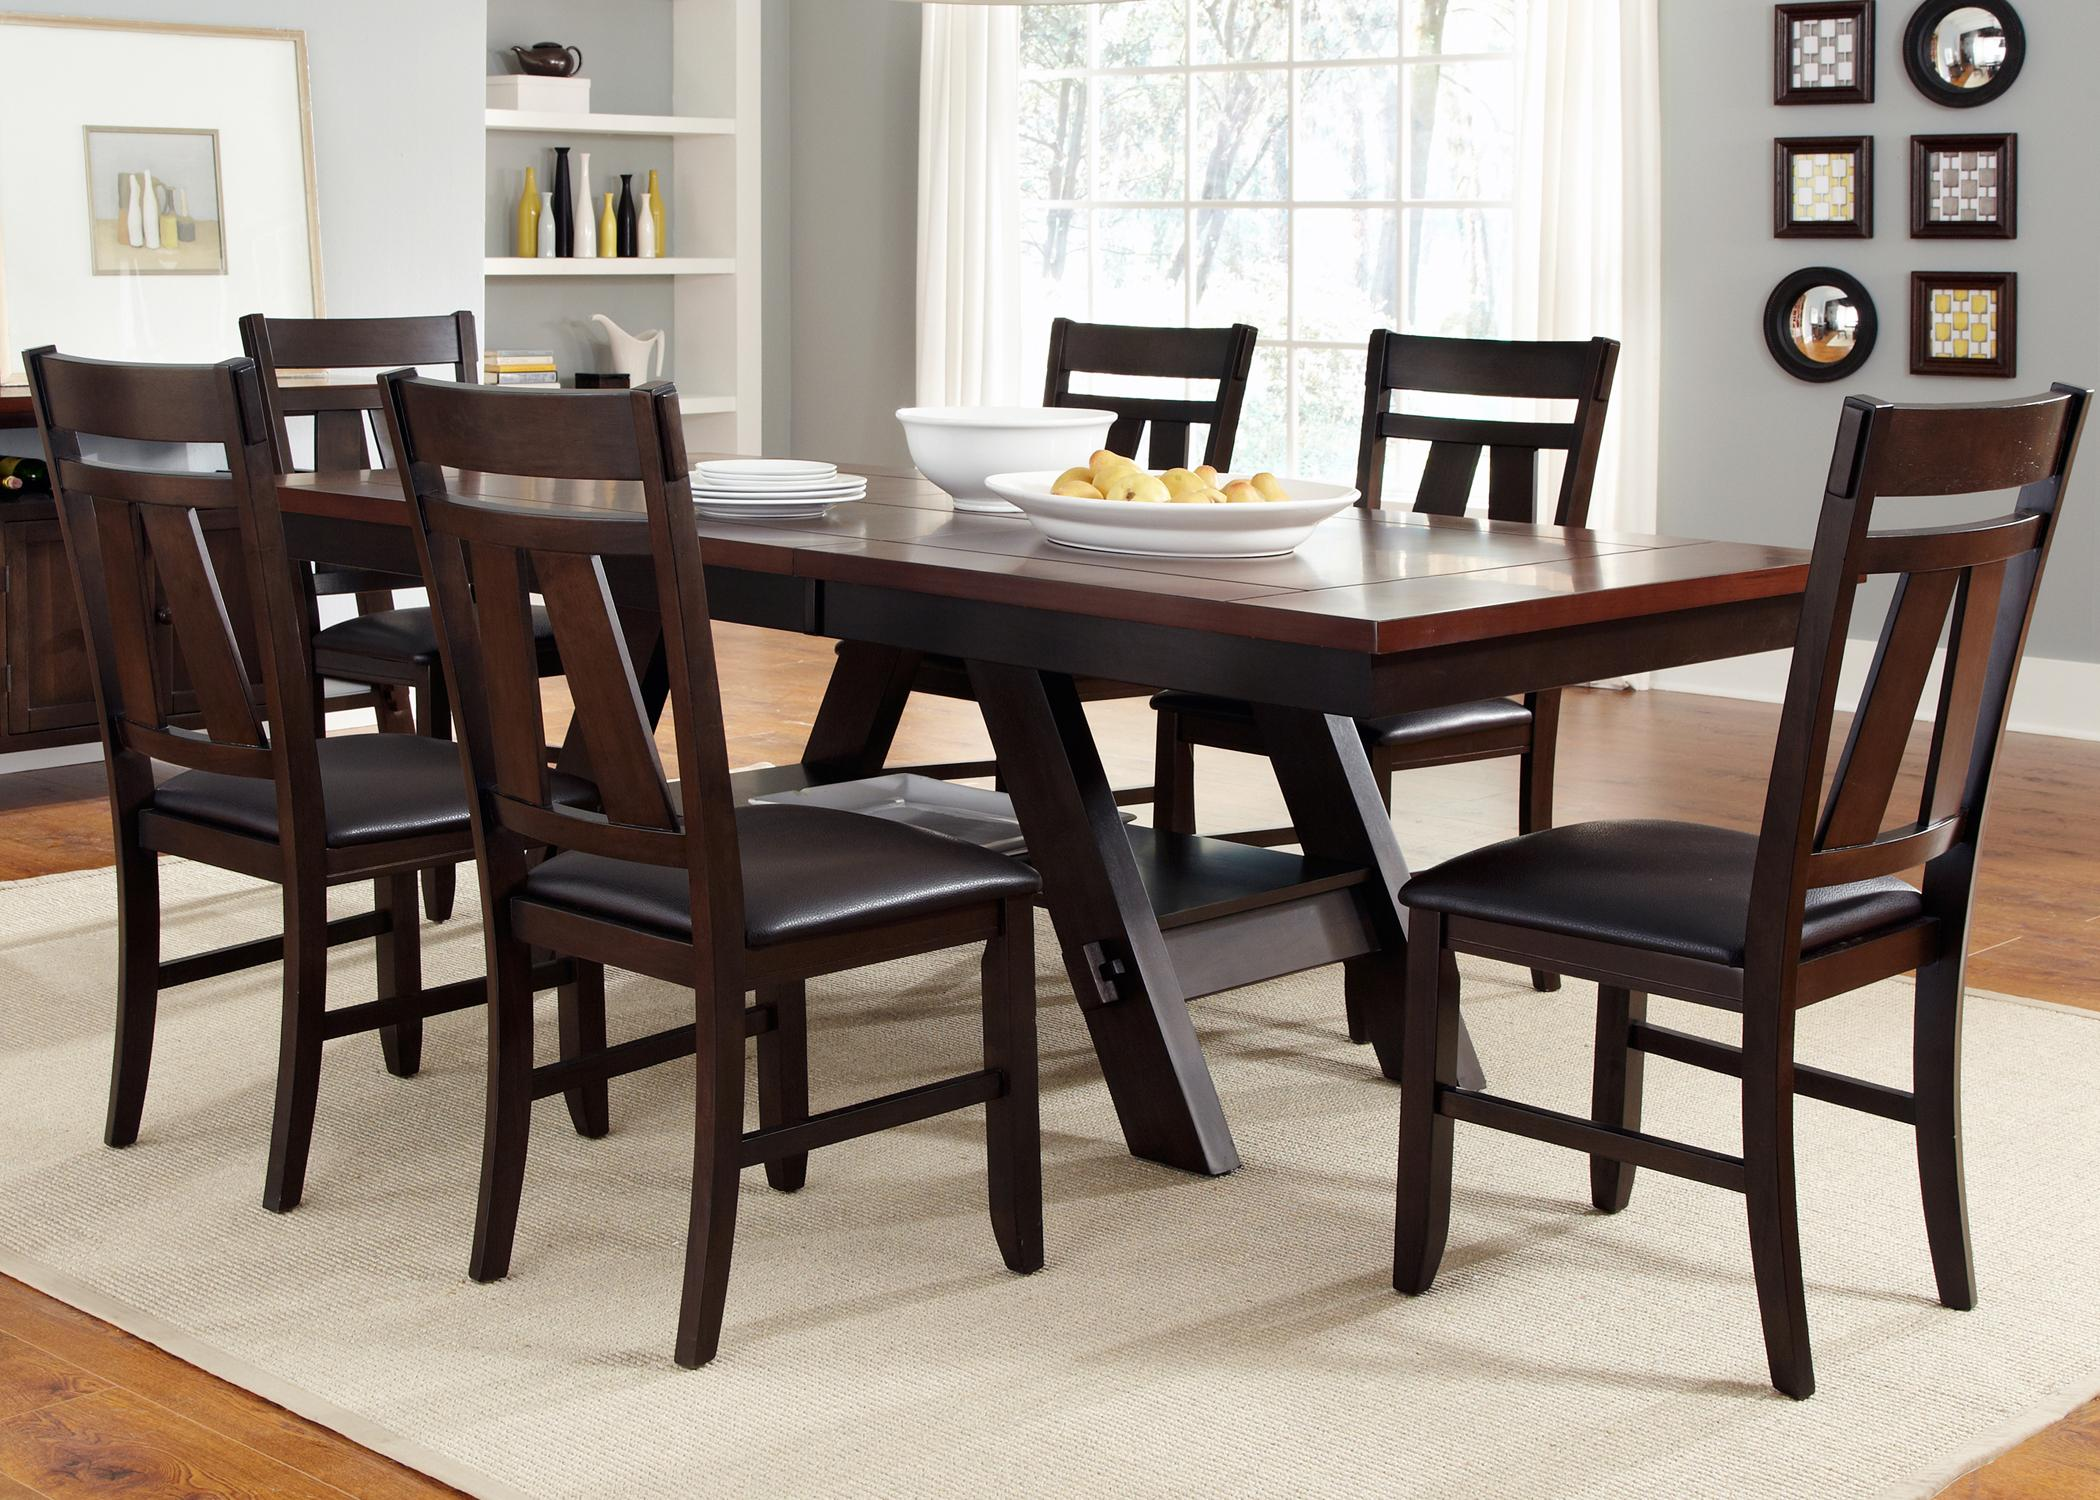 Liberty Furniture Lawson 7 Piece Rectangular Table Set - Item Number: 116-CD-SET32